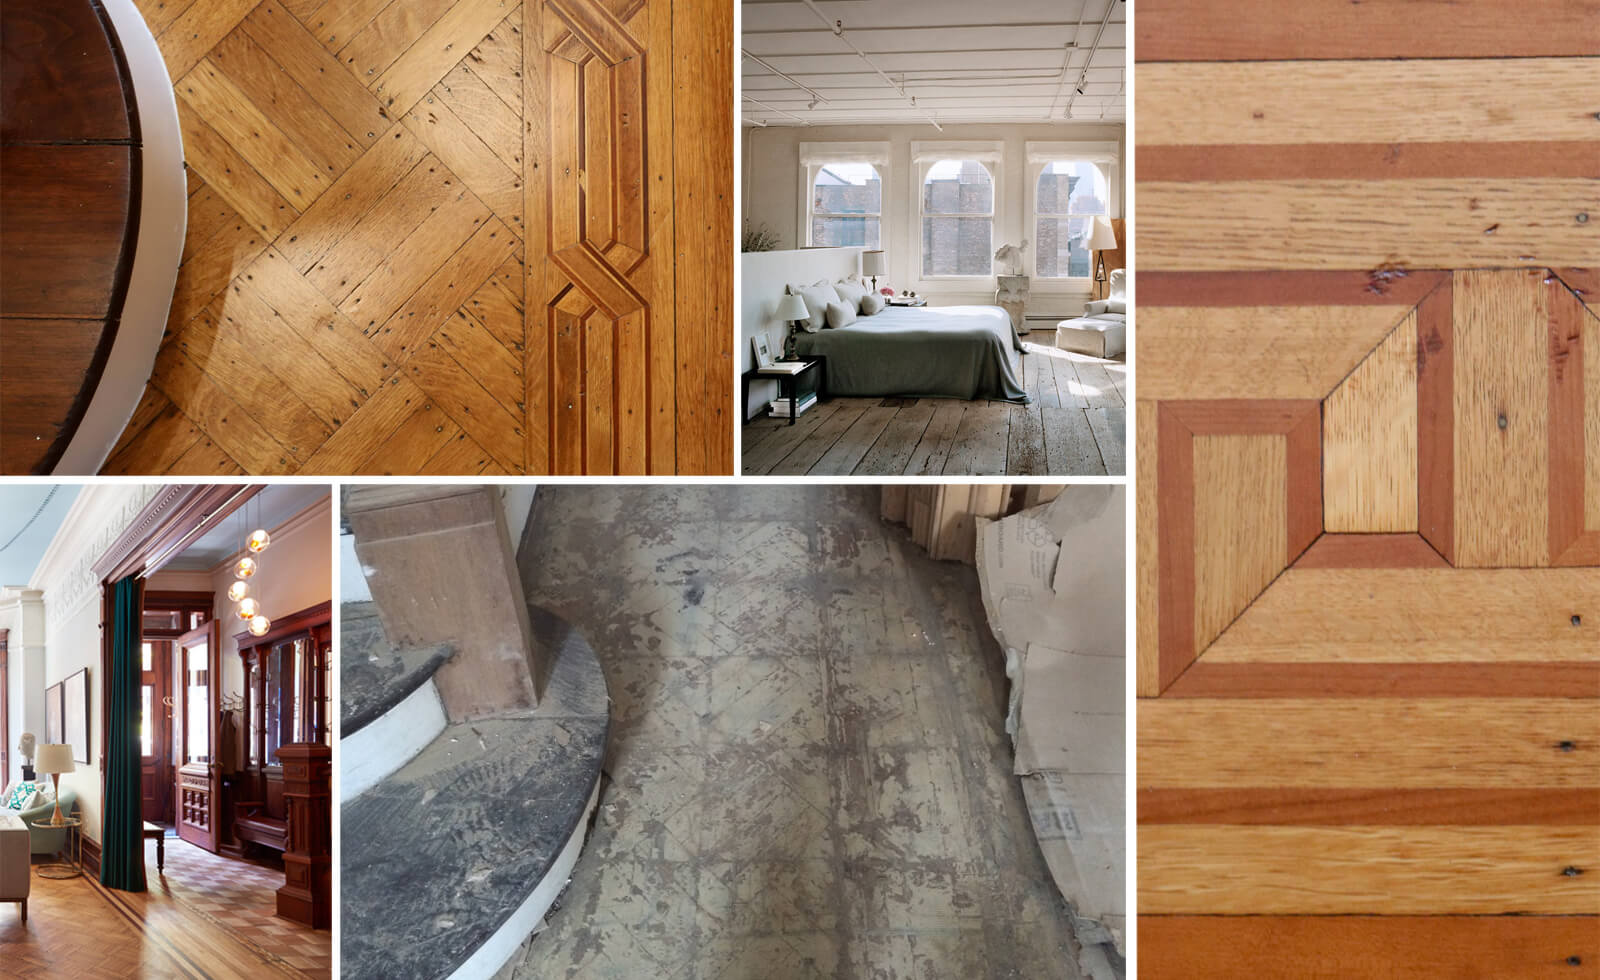 How to know when an old wood floor is worth restoring or should be replaced